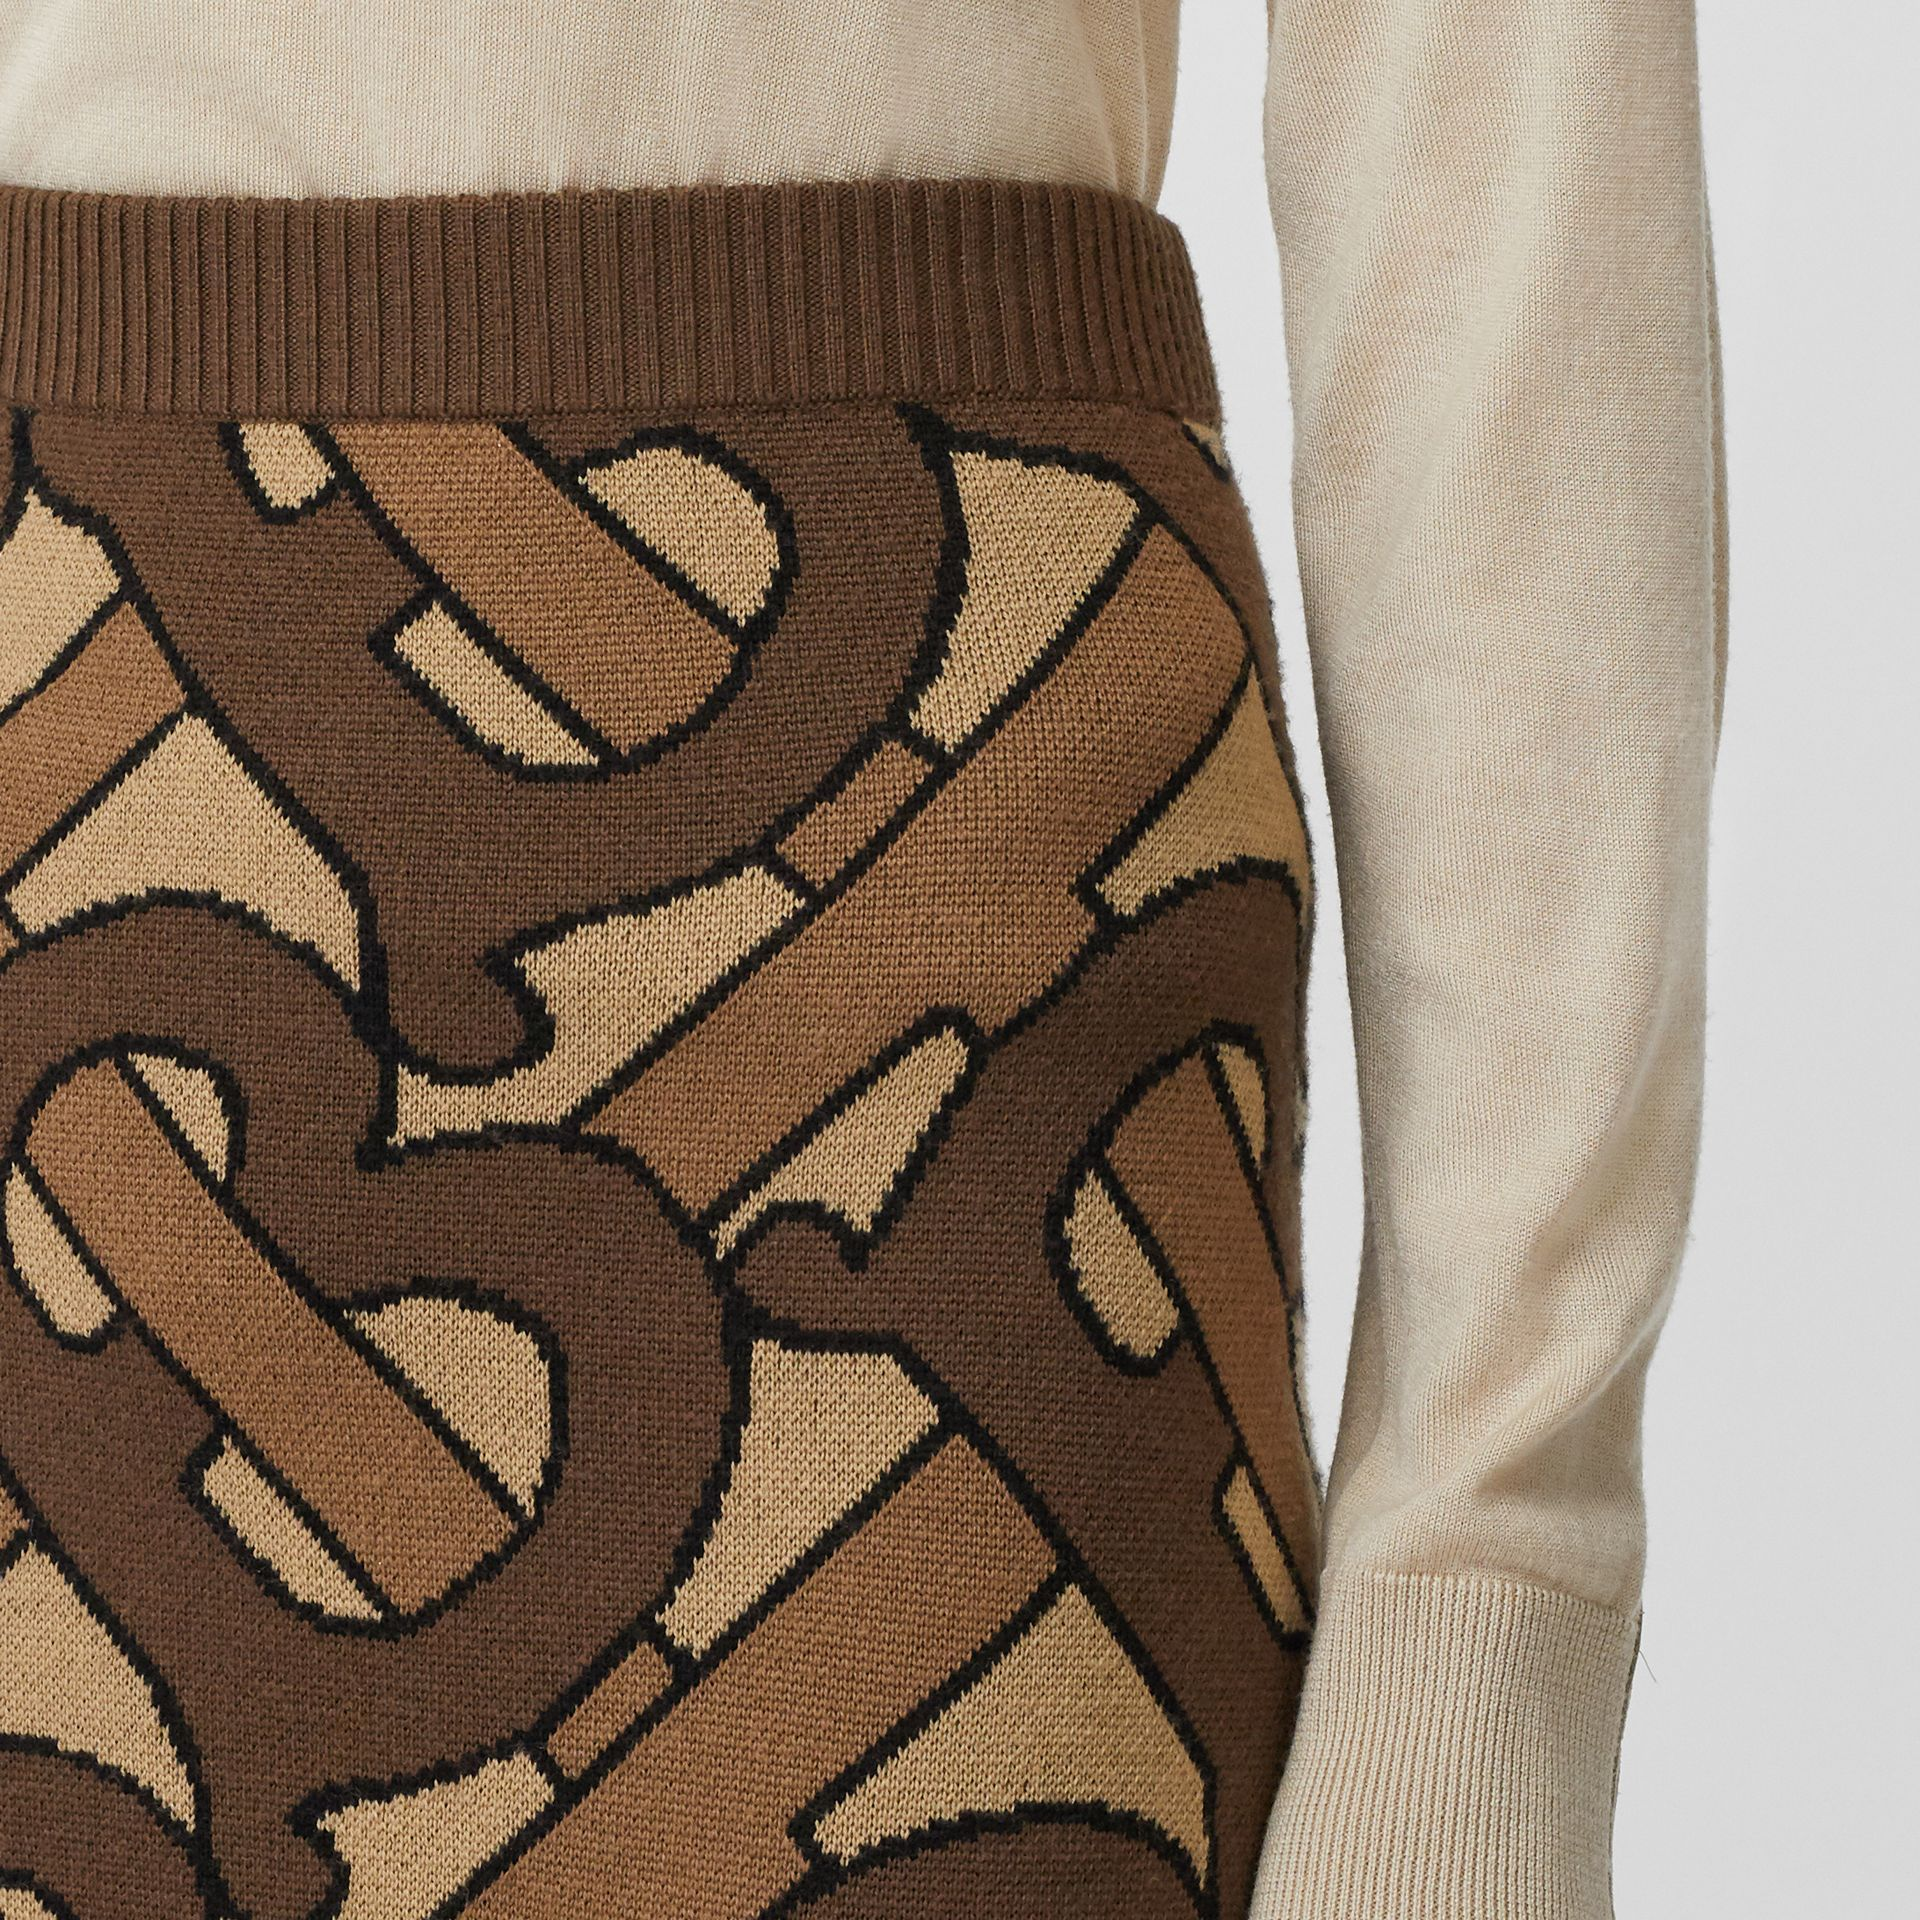 Monogram Intarsia Wool Pencil Skirt in Bridle Brown - Women | Burberry Canada - gallery image 1